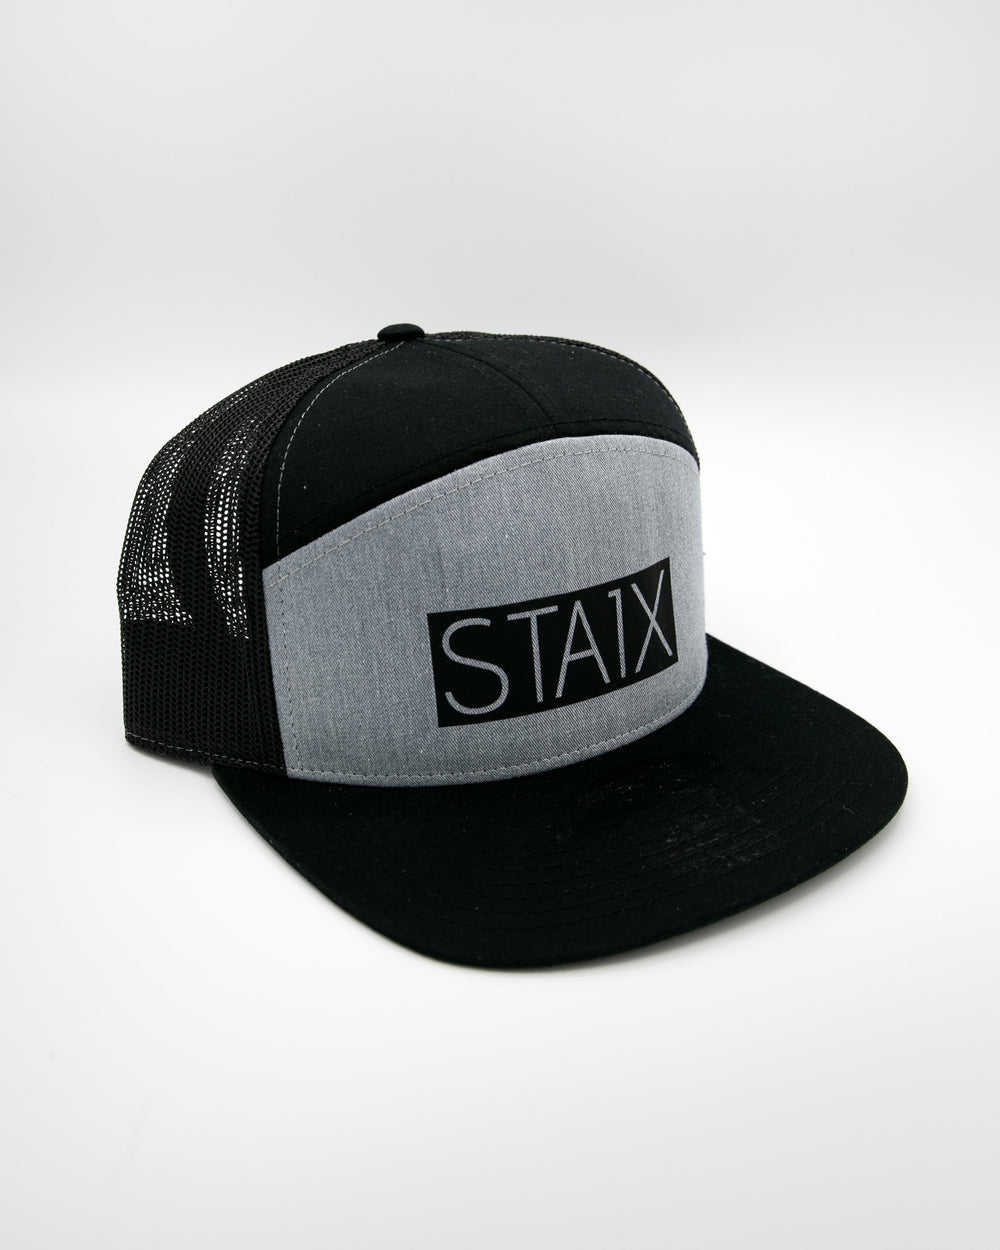 BOXER TWO TONE 7 PANEL - HEATHER GRAY HEADWEAR STAIX